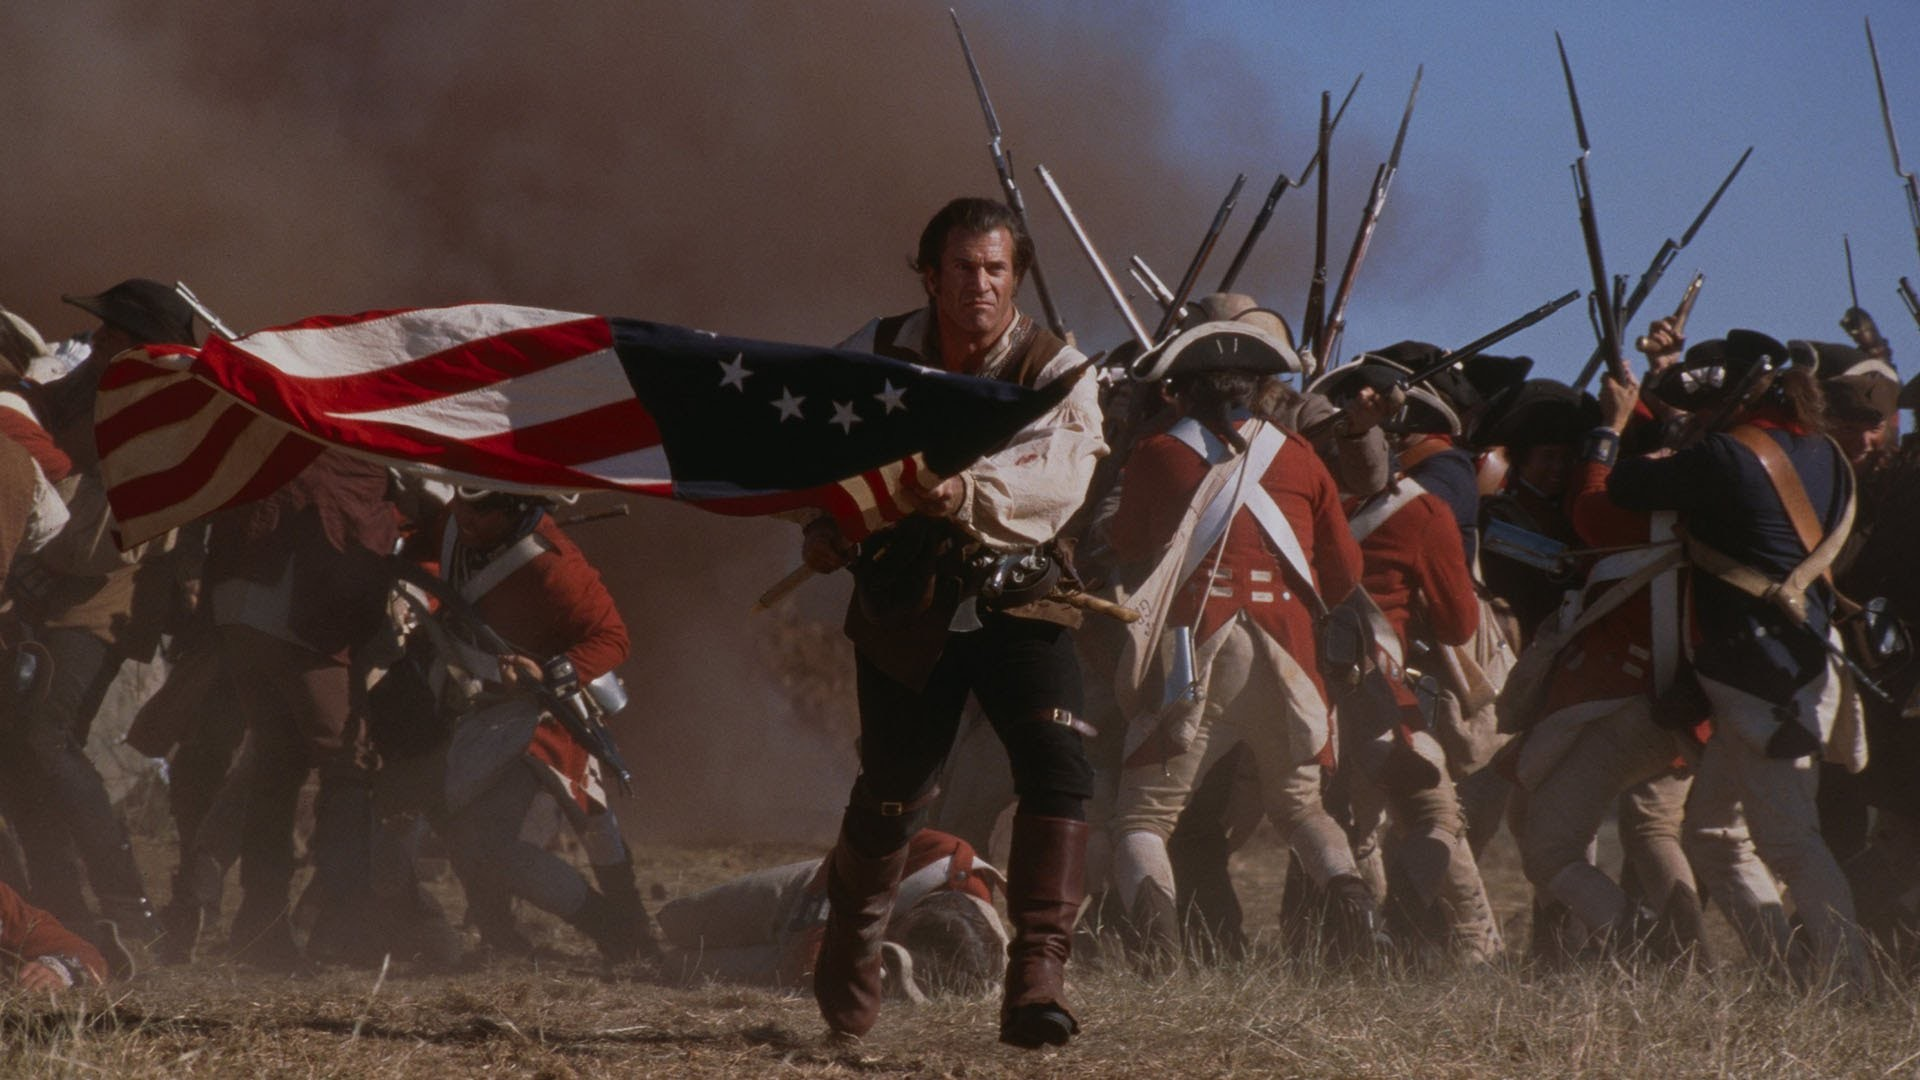 Res: 1920x1080, Why Is There A Lack Of American Revolution Era Films? - AMC Movie News